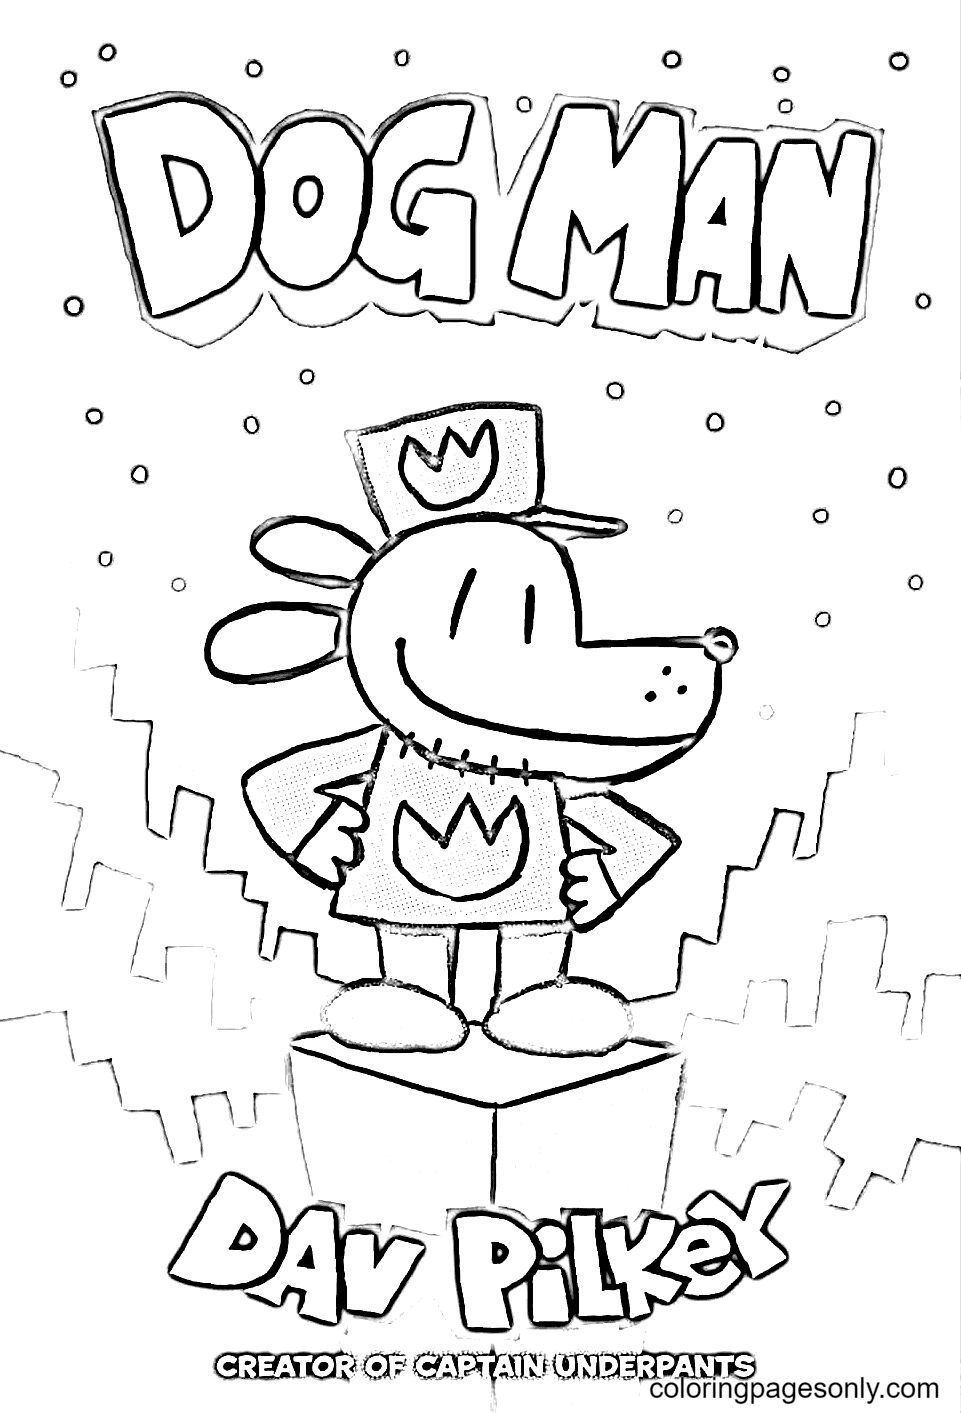 DogMan Coloring Page